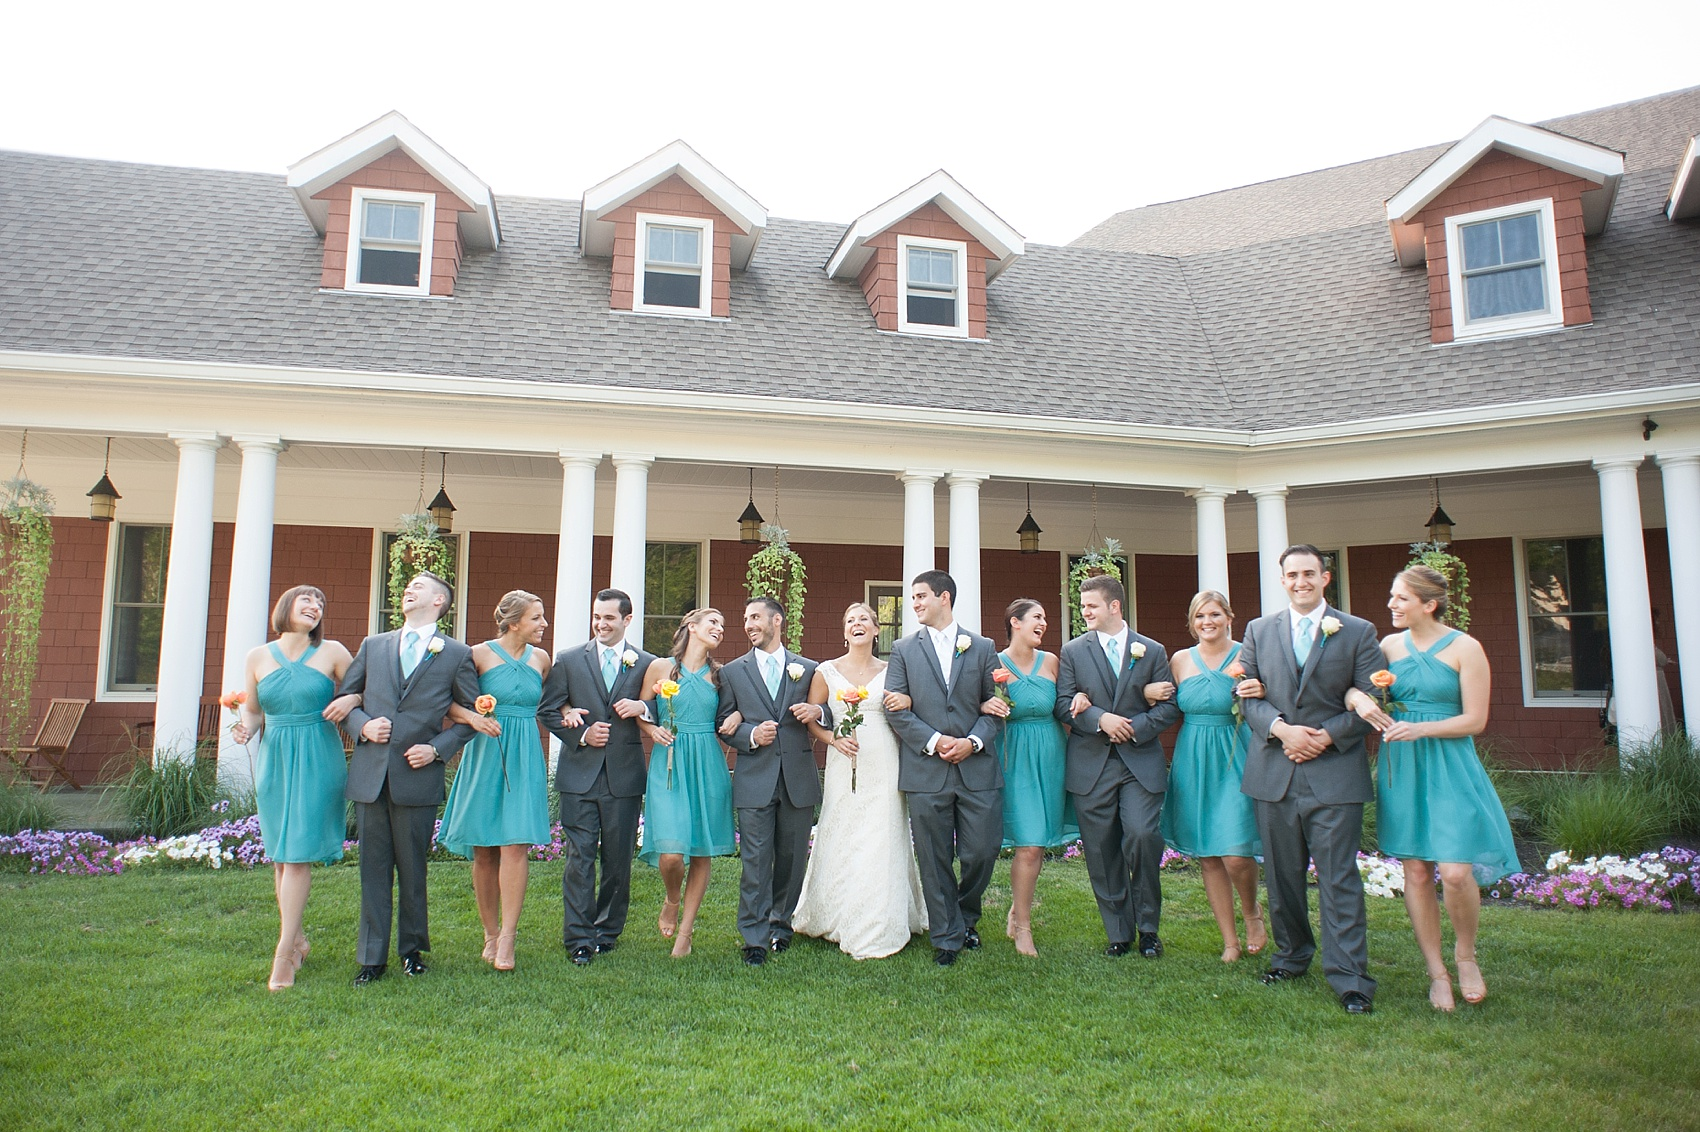 Wedding party in teal dresses and grey suits for a Hollow Brook Golf Club wedding in New York. Photos by Mikkel Paige Photography.